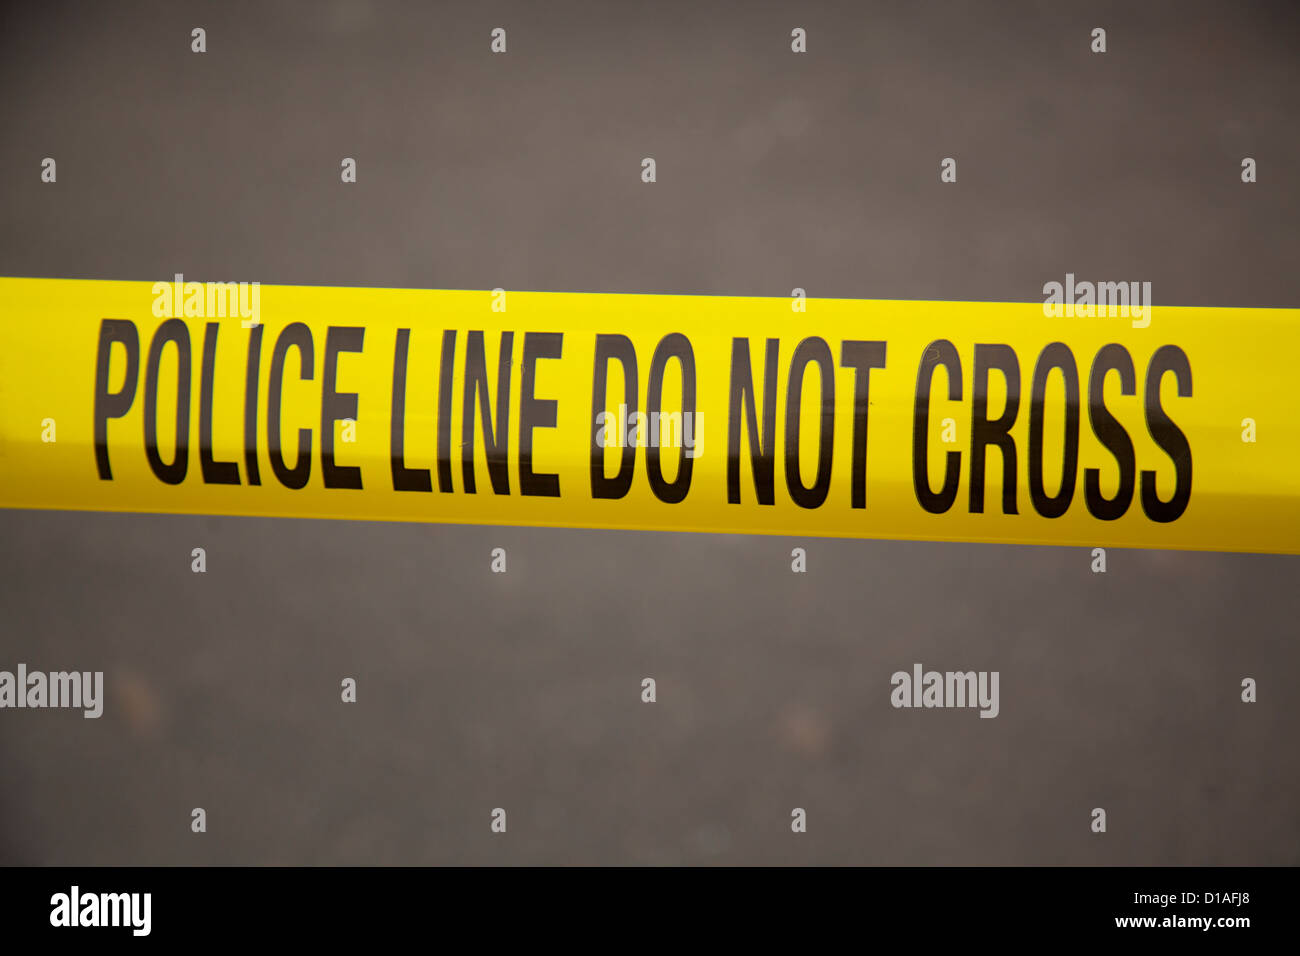 police line do not cross yellow tape - Stock Image